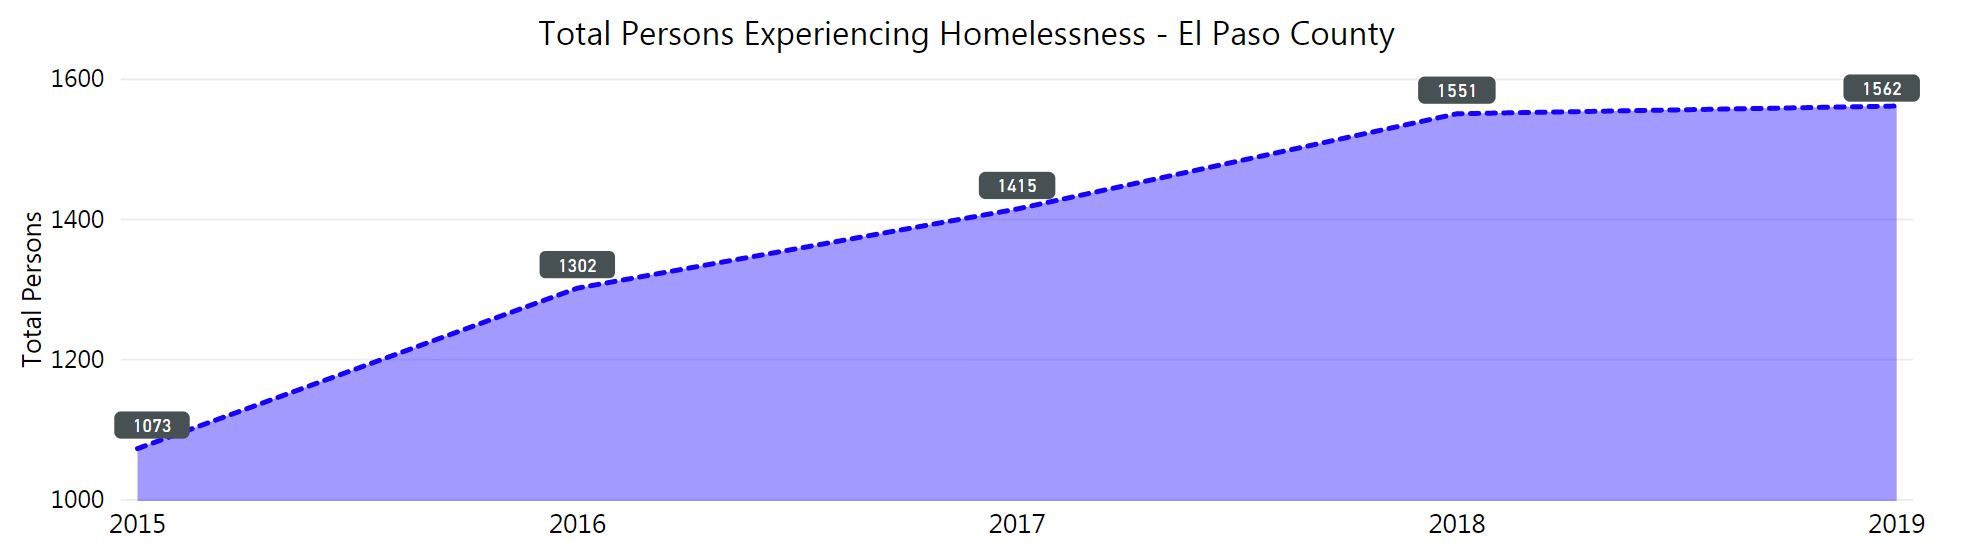 graph of homeless count. lowest 2015 at 1,073. Highest in 2019 at 1,562.